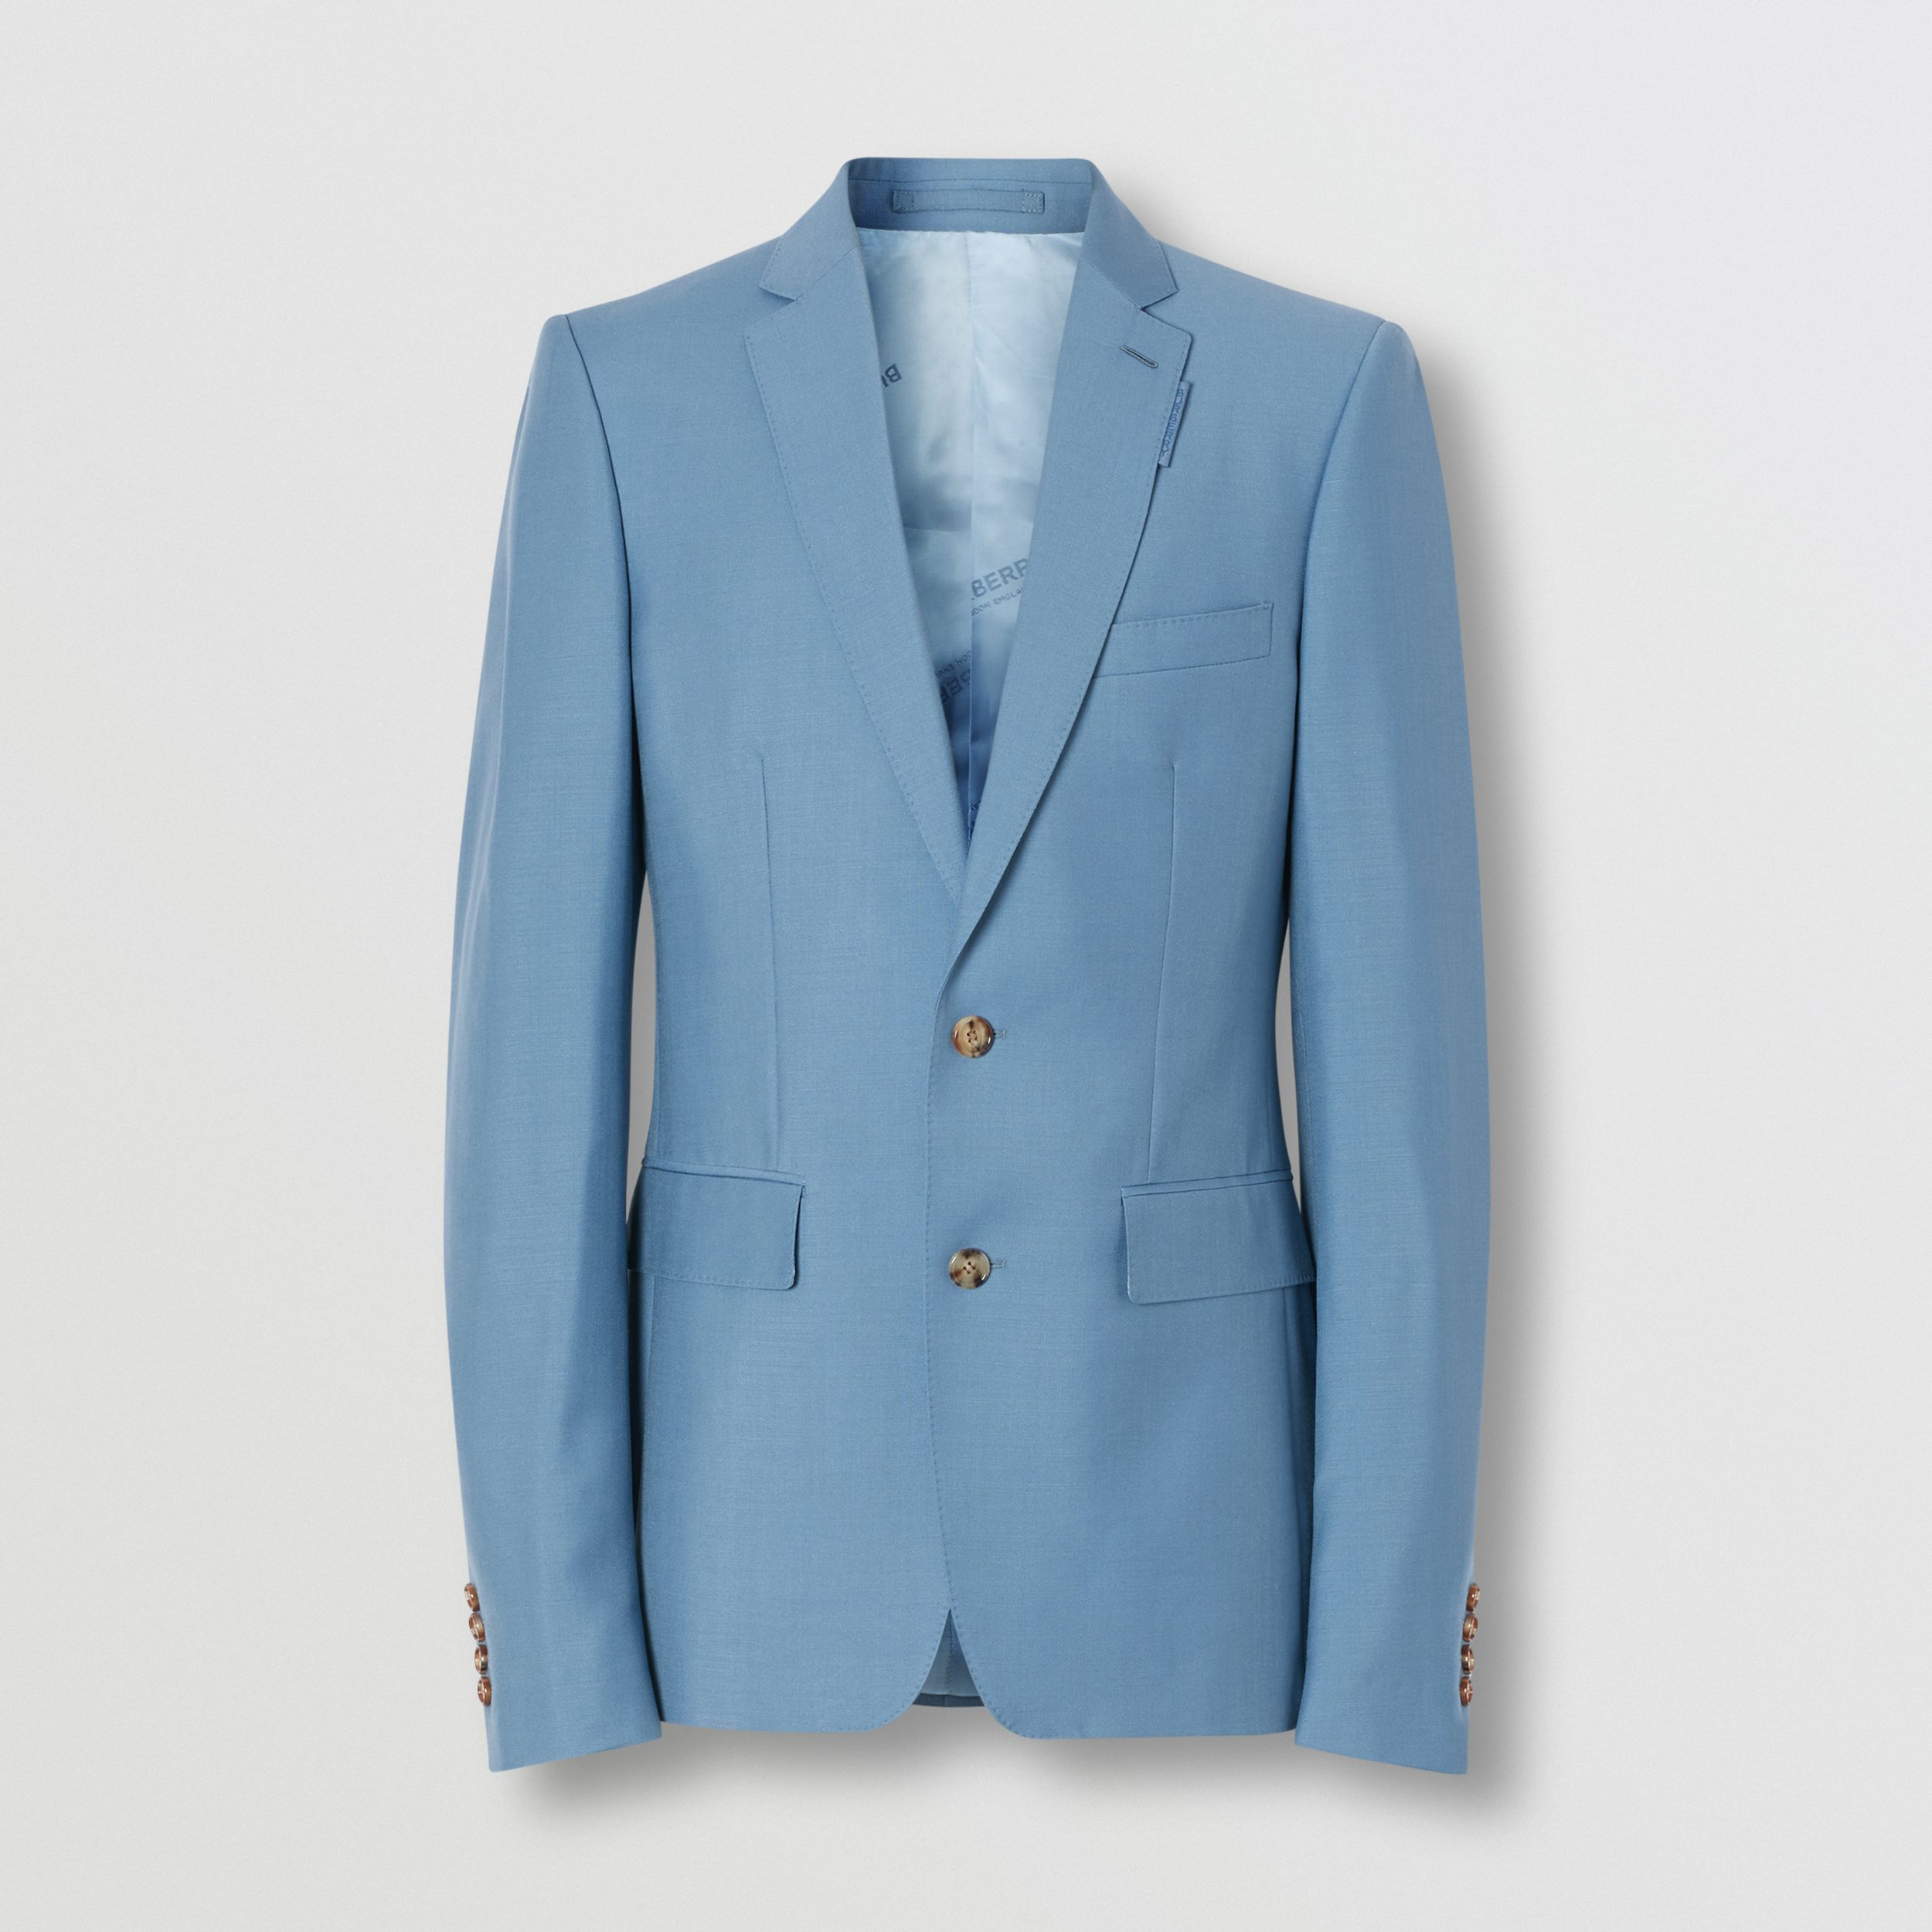 English Fit Wool Mohair Tailored Jacket in Steel Blue - Men | Burberry - 4